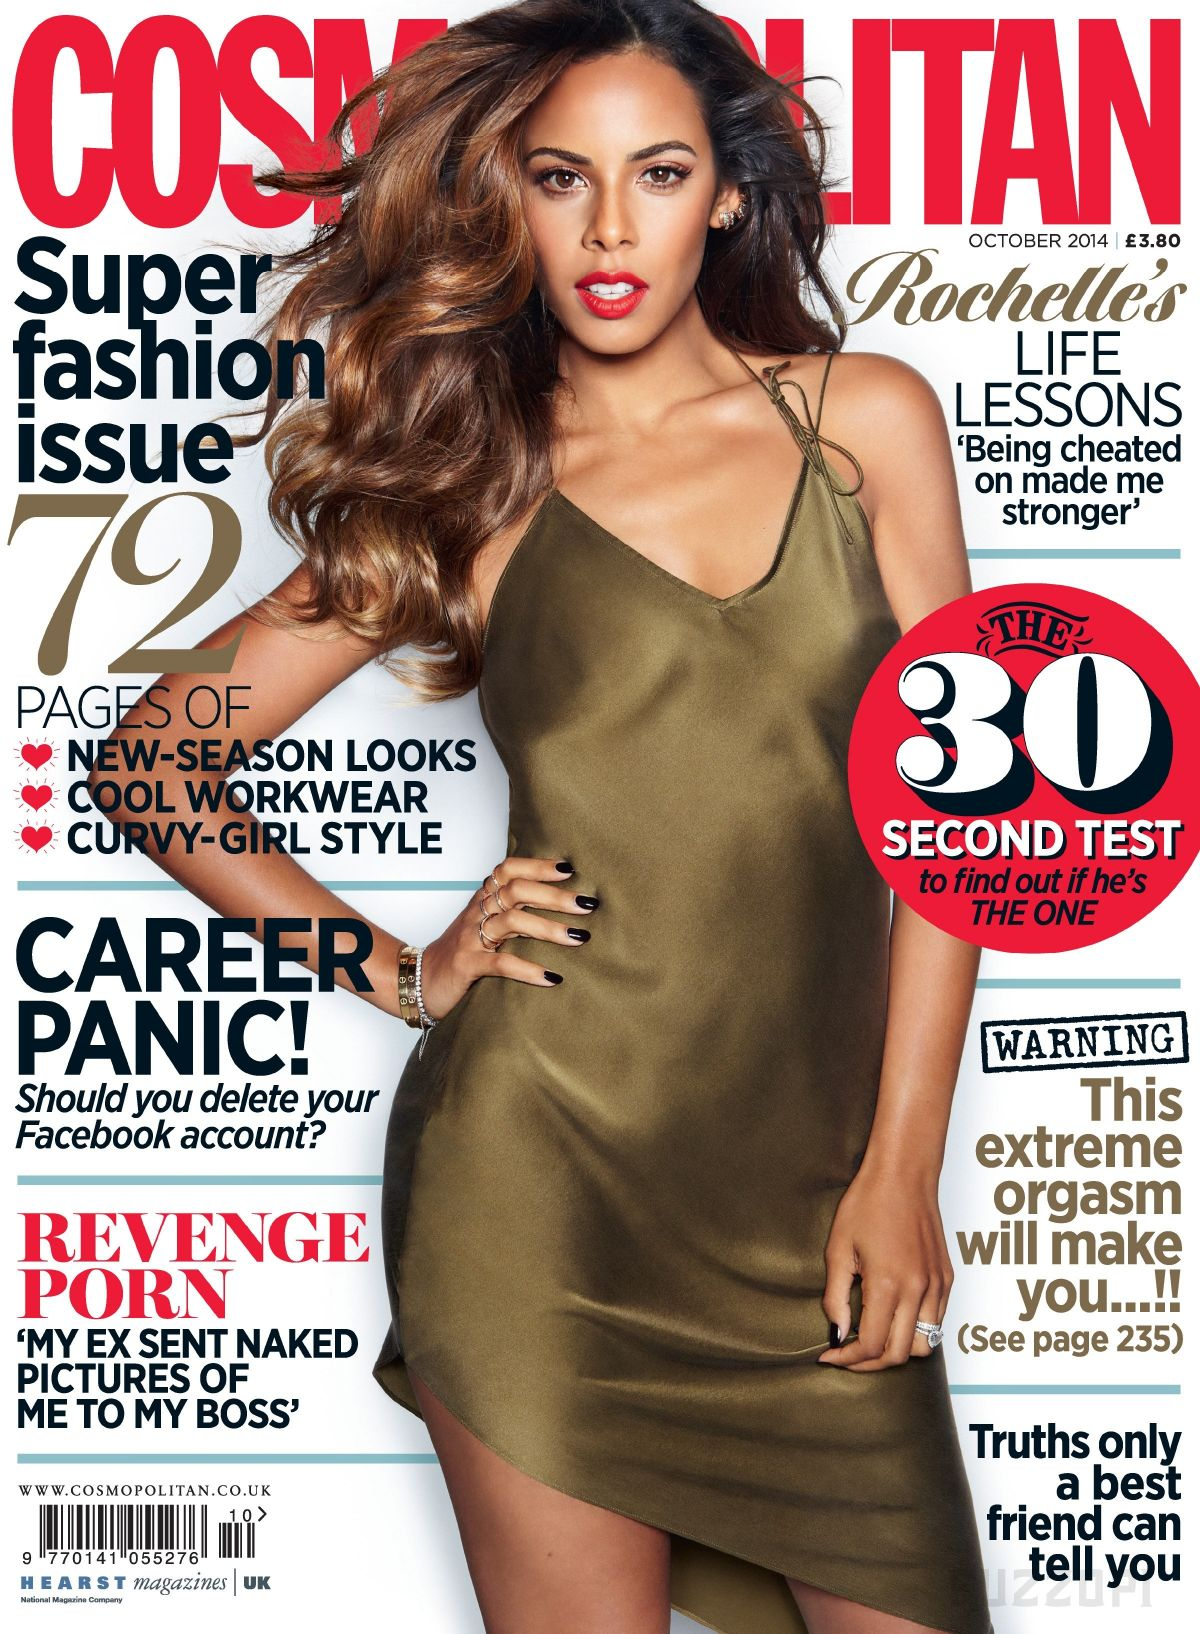 ROCHELLE HUMES in Cosmopolitan Magazine, October 2014 Issue